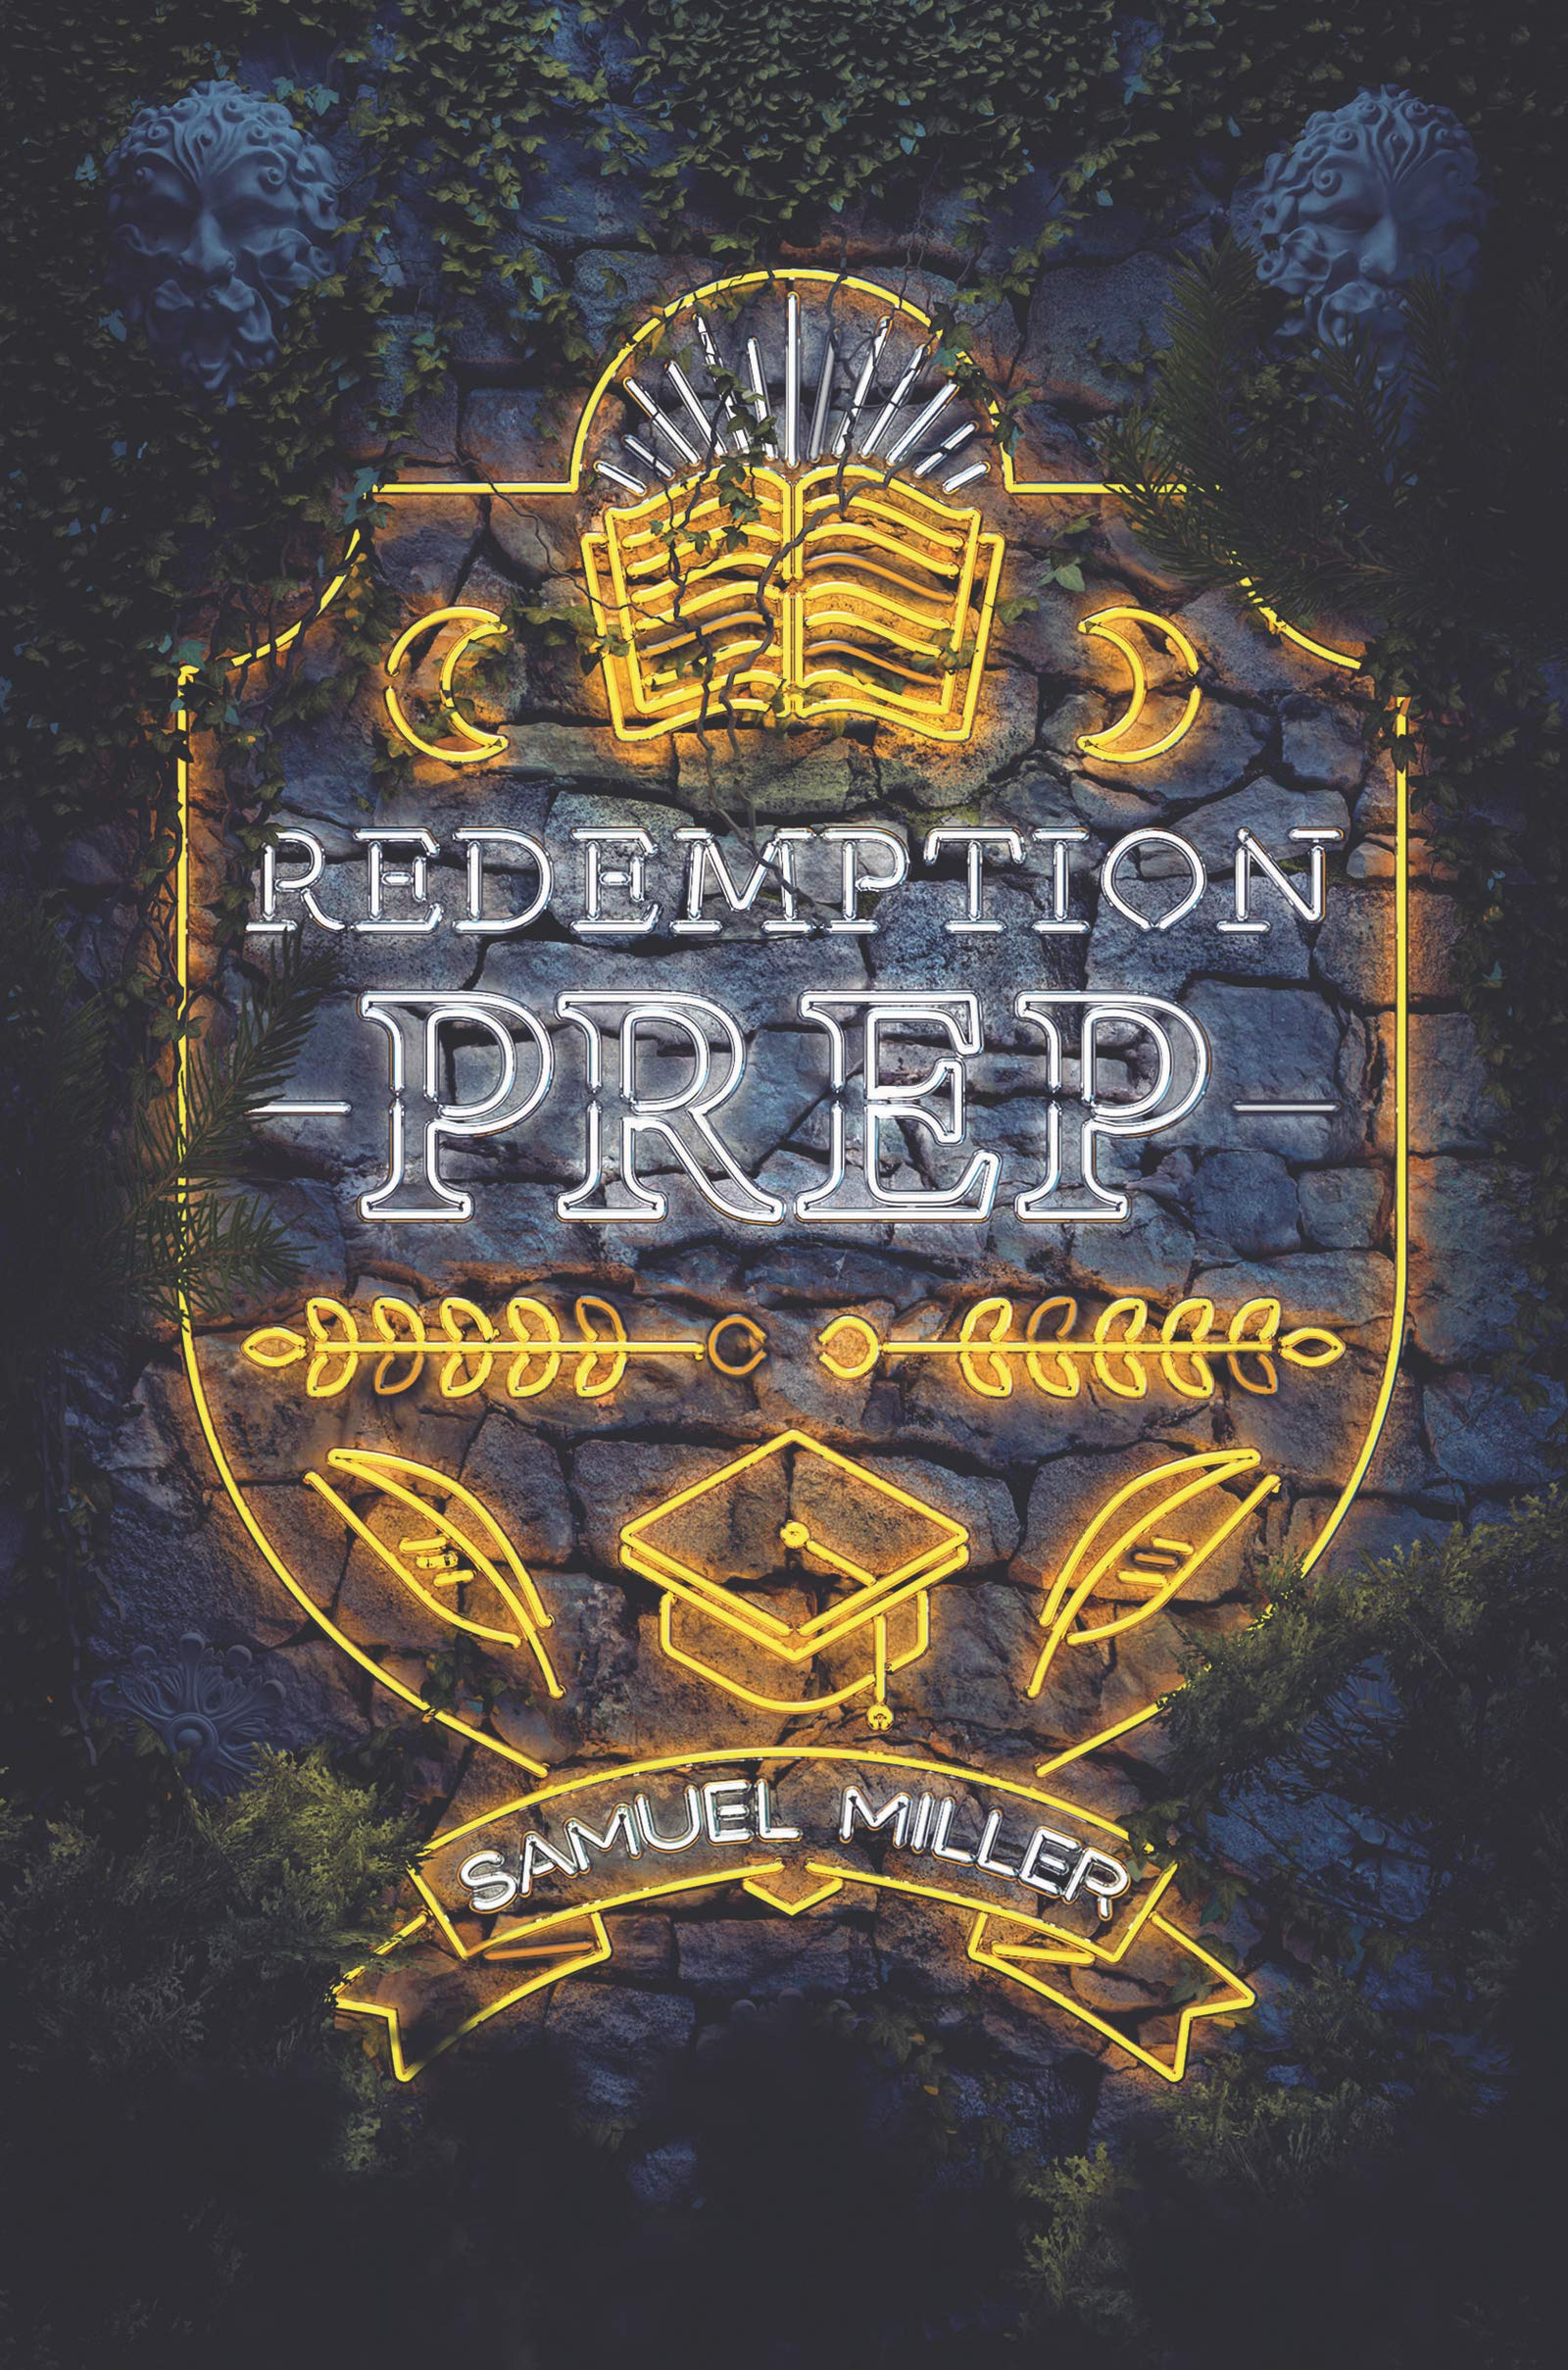 Amazon.com: Redemption Prep (9780062662033): Miller, Samuel: Books